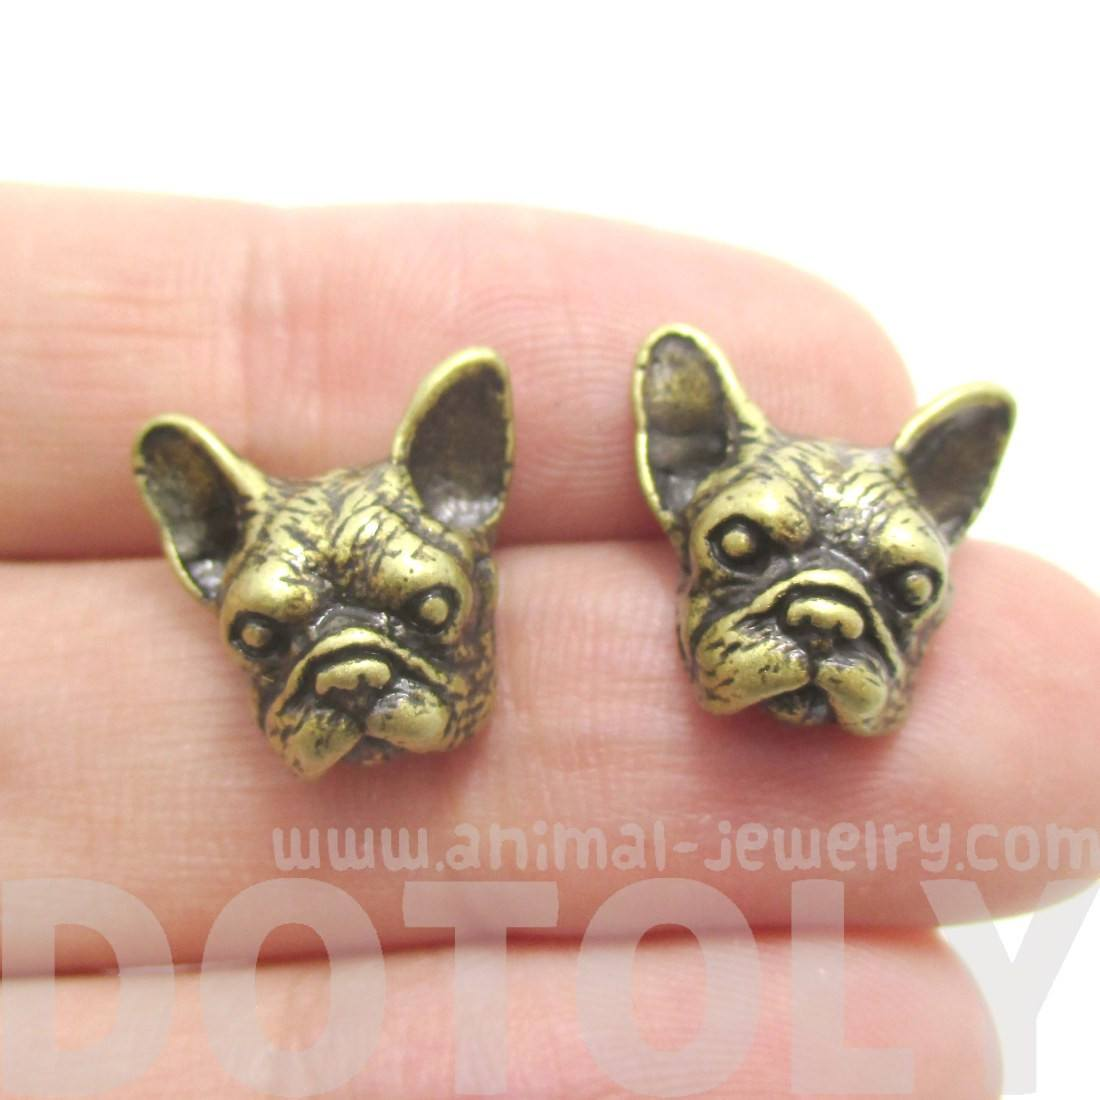 French Bulldog Dog Face Shaped Stud Earrings in Brass